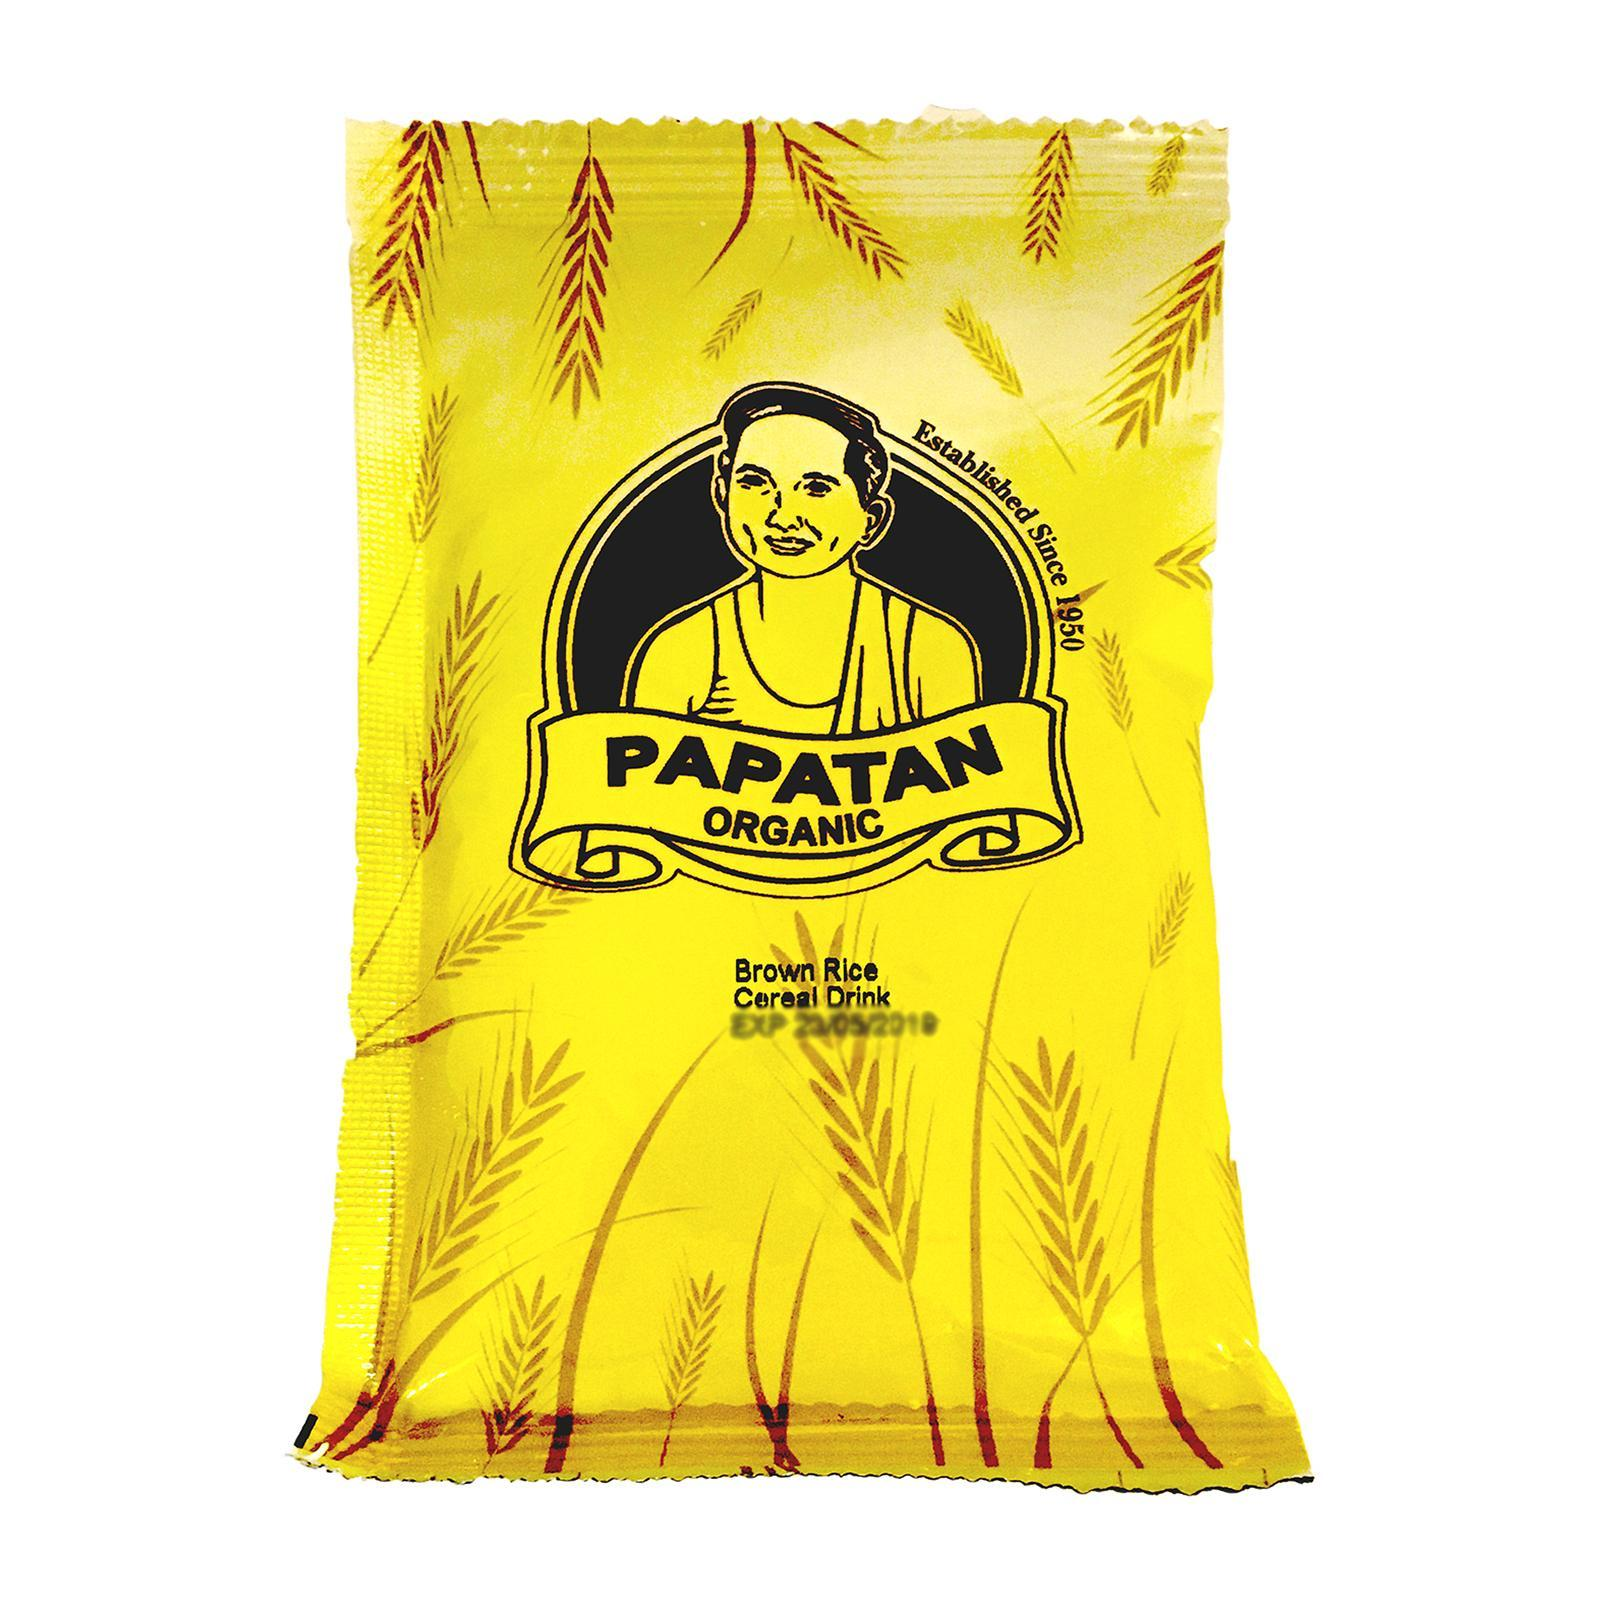 Pa Pa Tan Natural Brown Rice Cereal Drink - Sachet [sample] By Redmart.